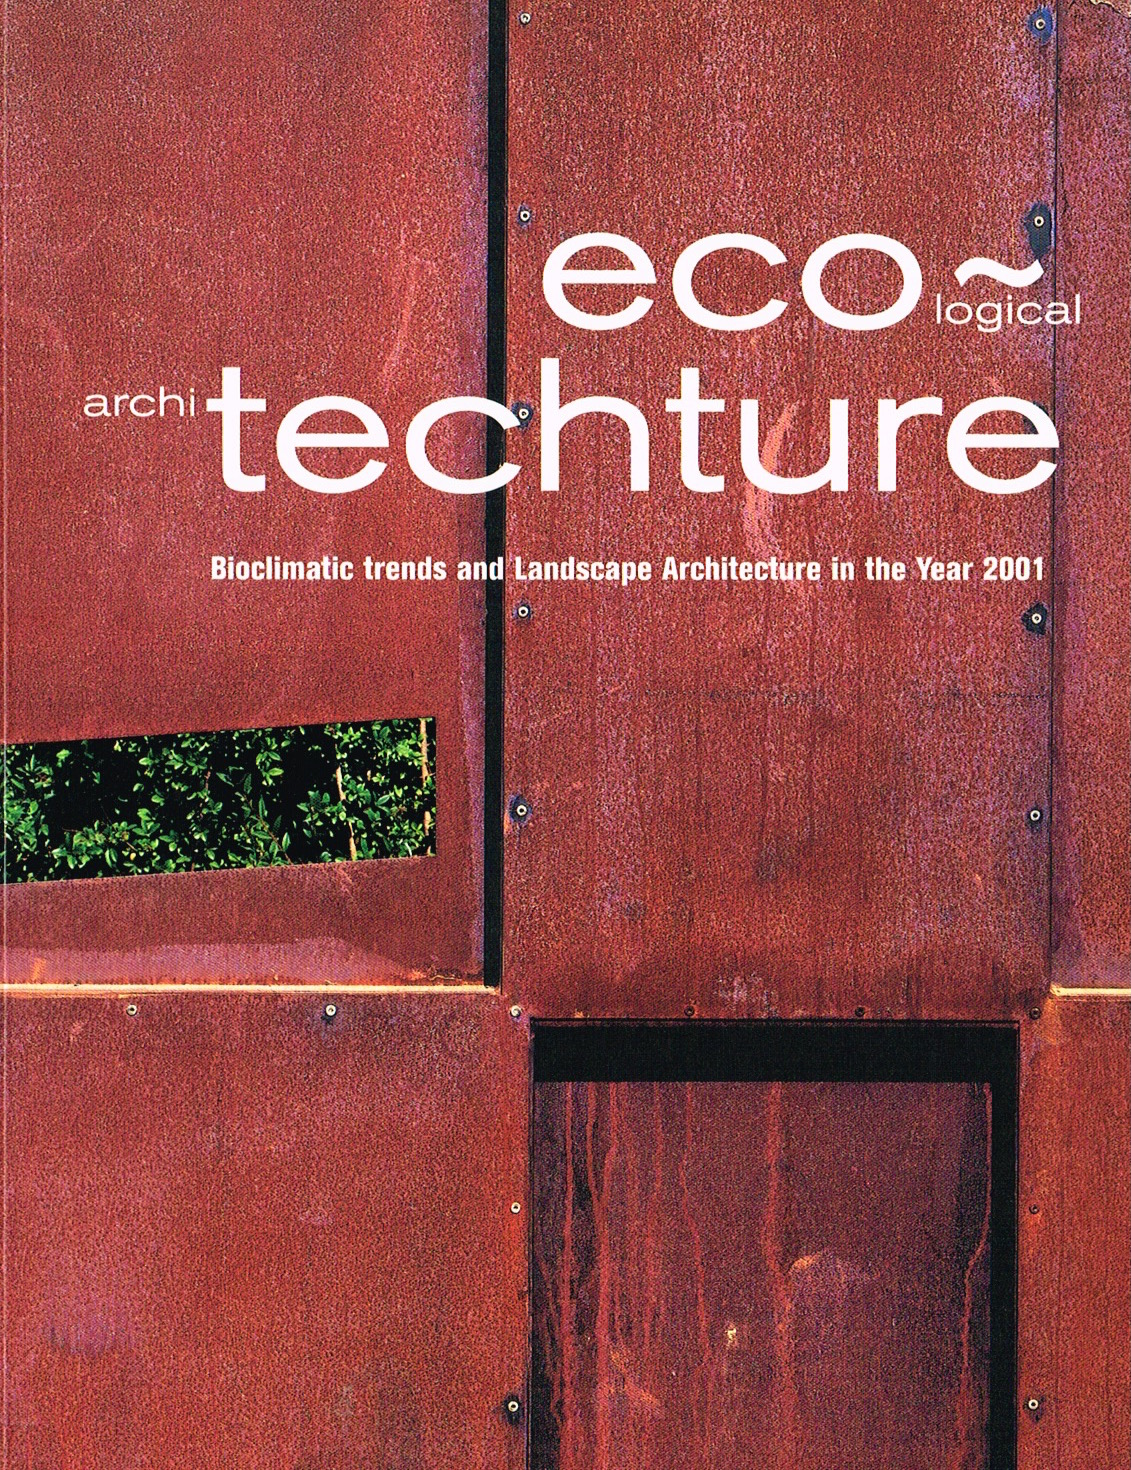 'Ecological Architecture' : Loft Publishing, Barcelona, 2000